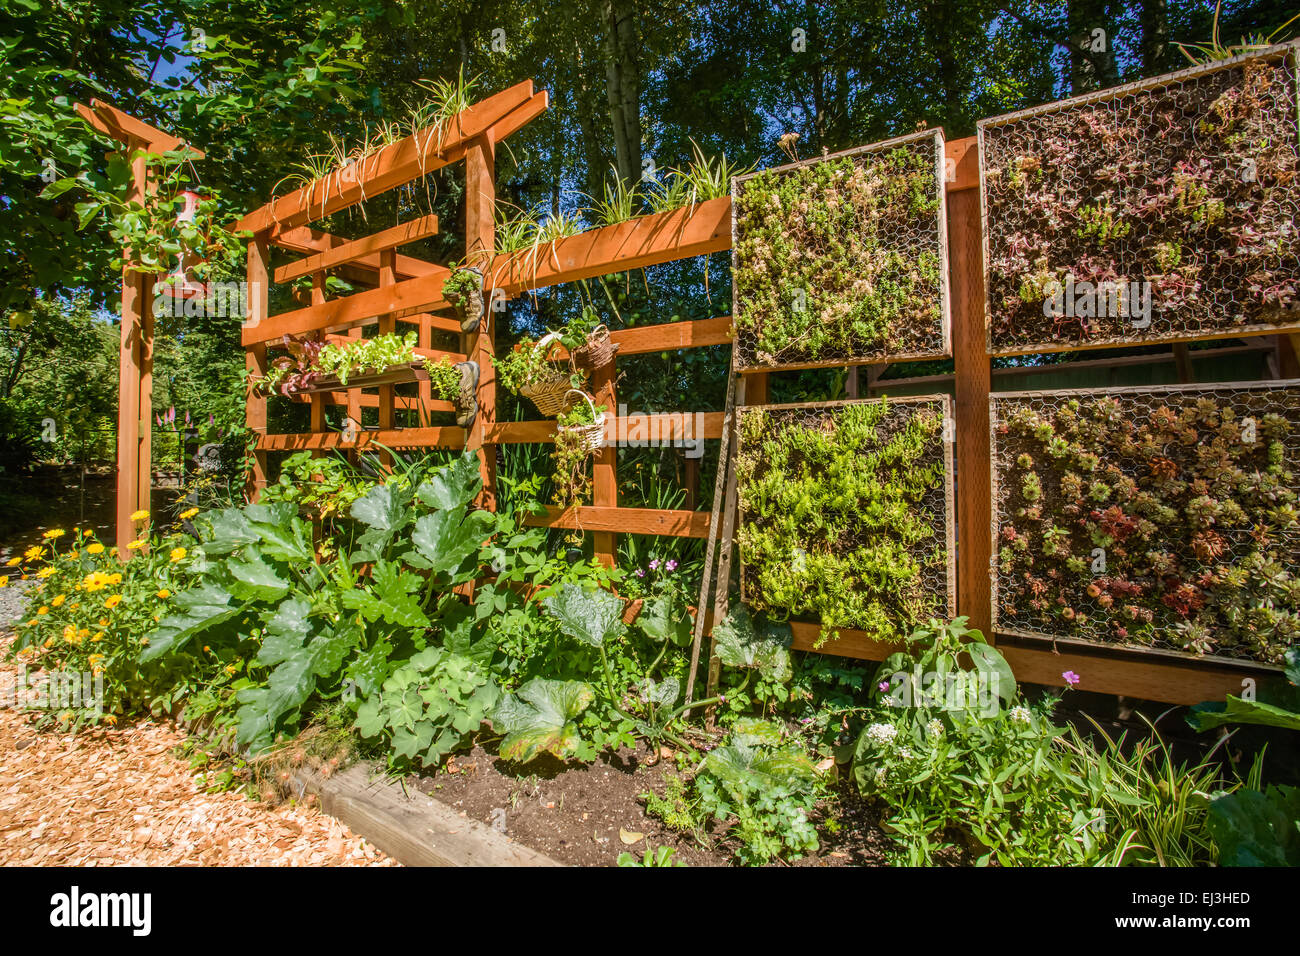 Vertical Vegetable Garden Growing On A Beautiful Wooden Trellis In